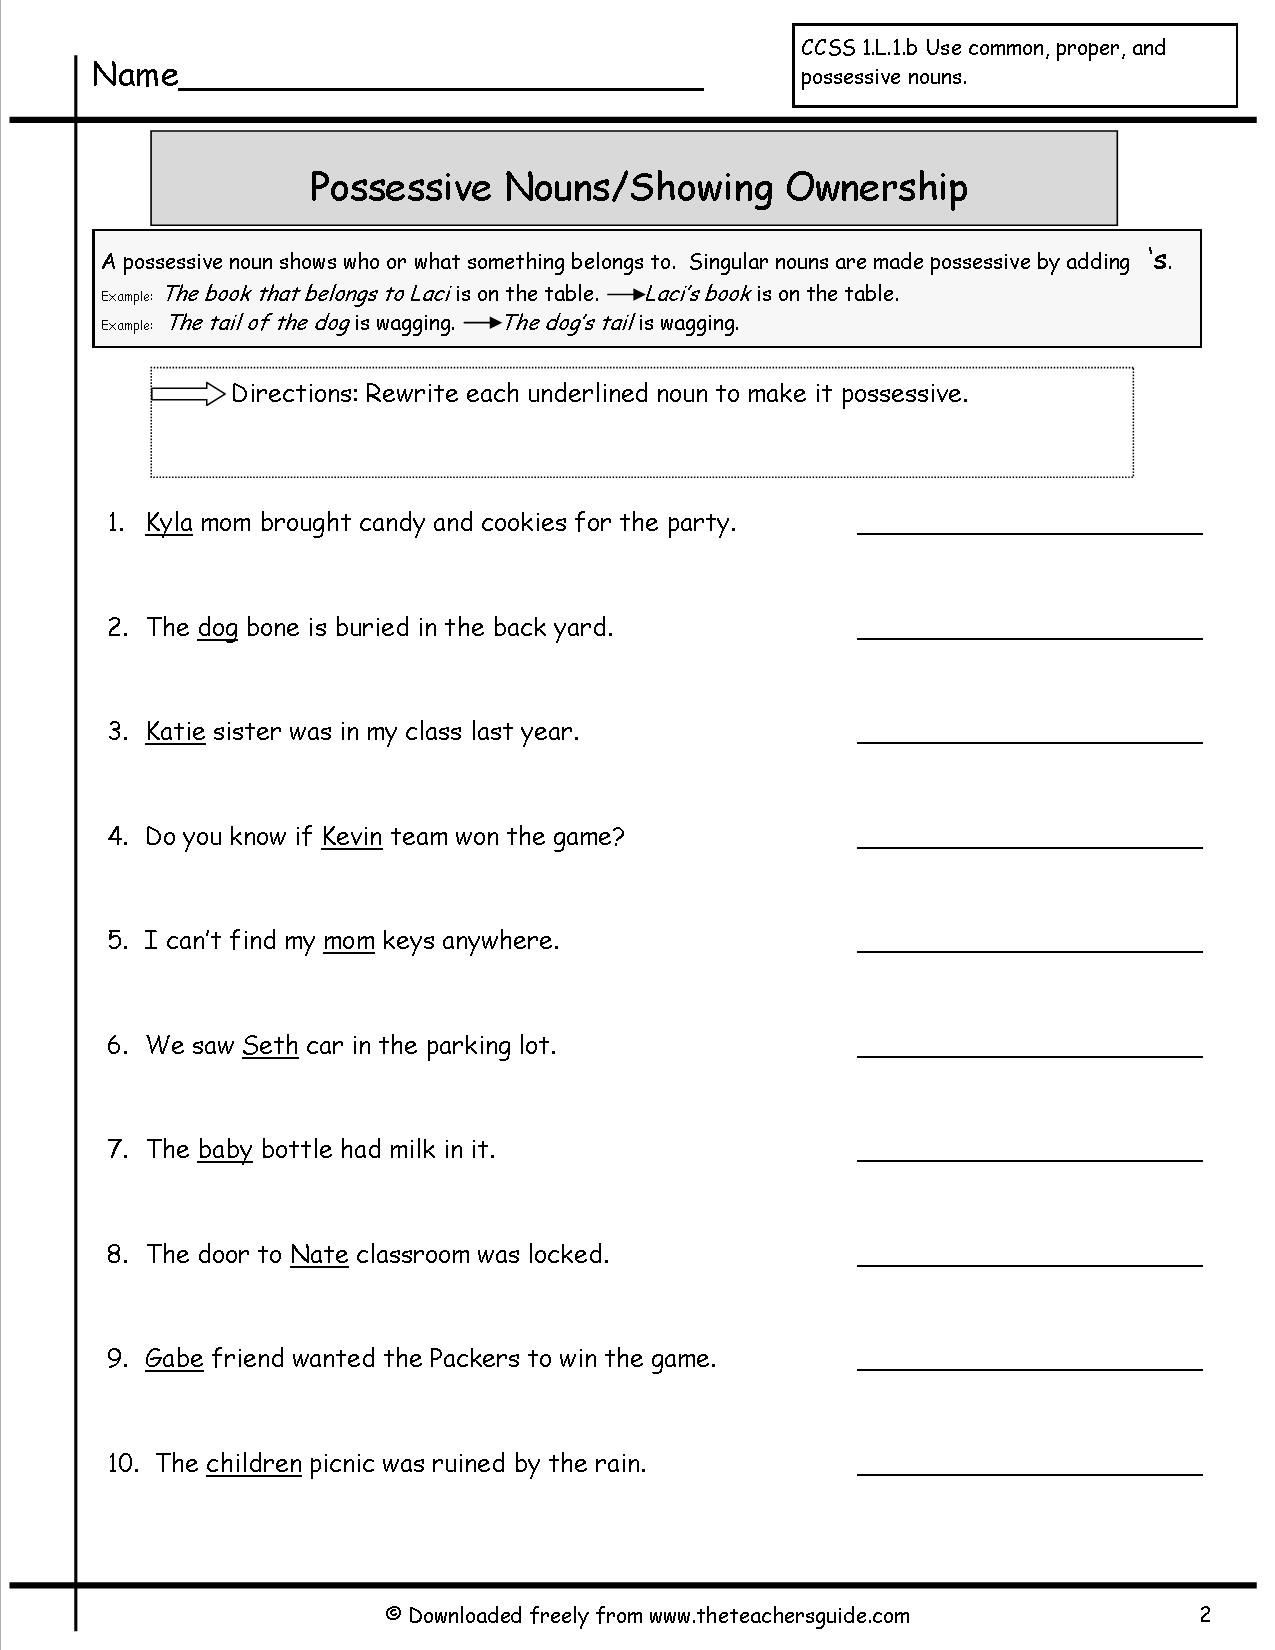 Possessive Nouns Worksheet 2nd Grade 37 Clever Possessive Nouns Worksheets Design S